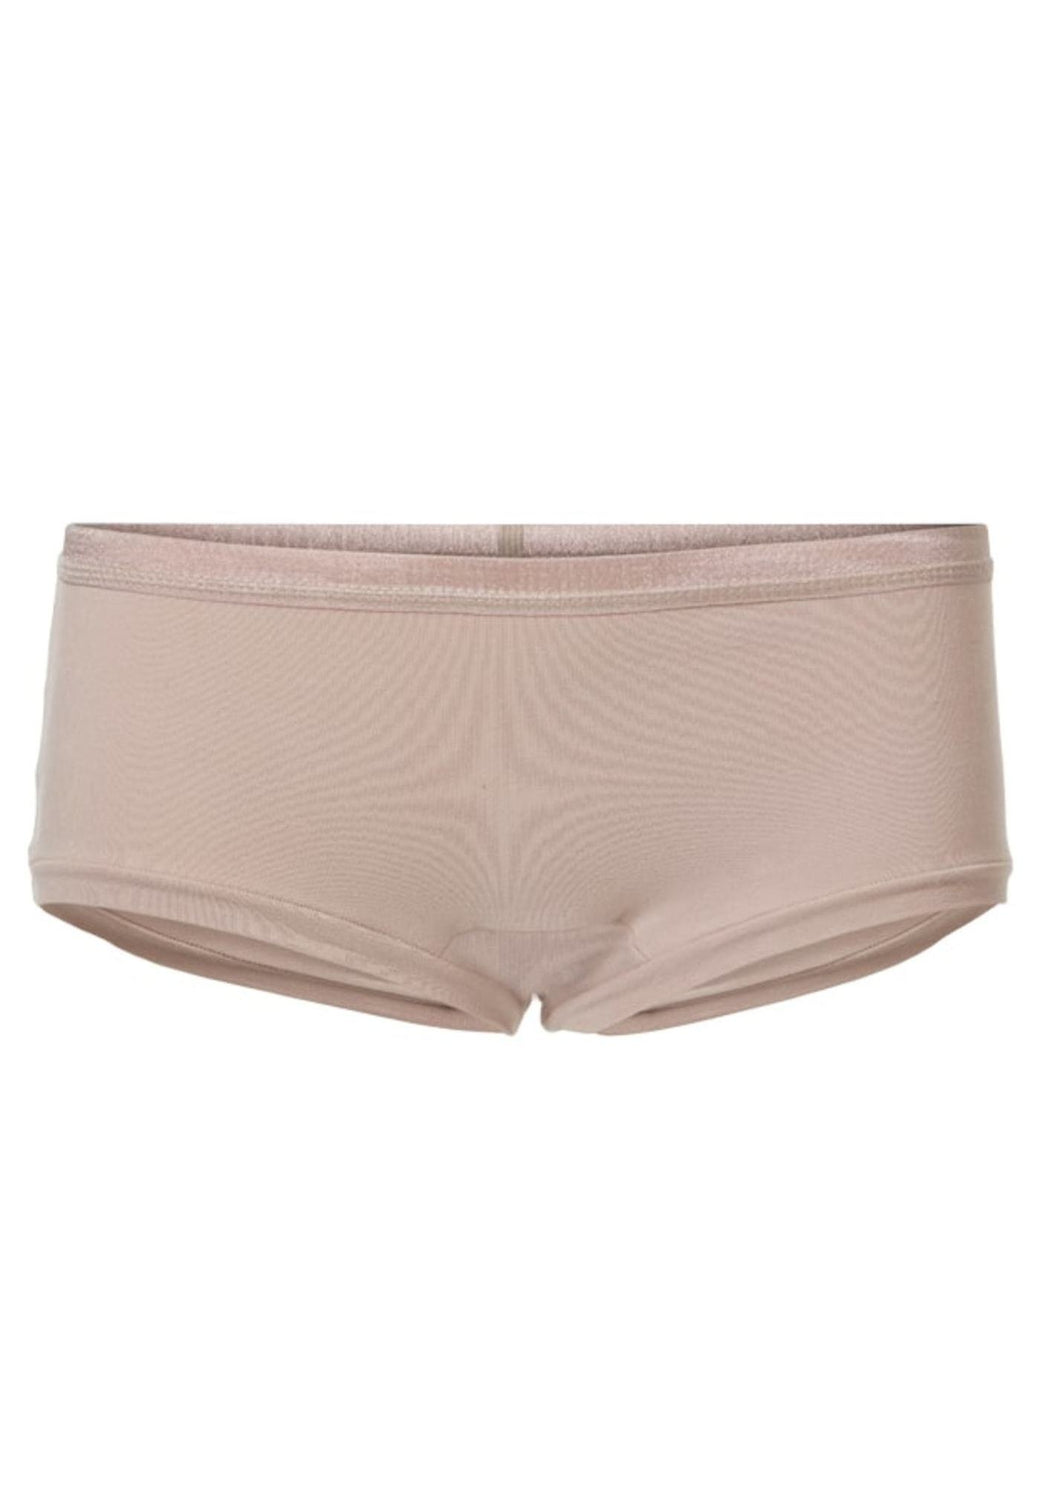 Brief Core Organic Undies - Nude Awakening